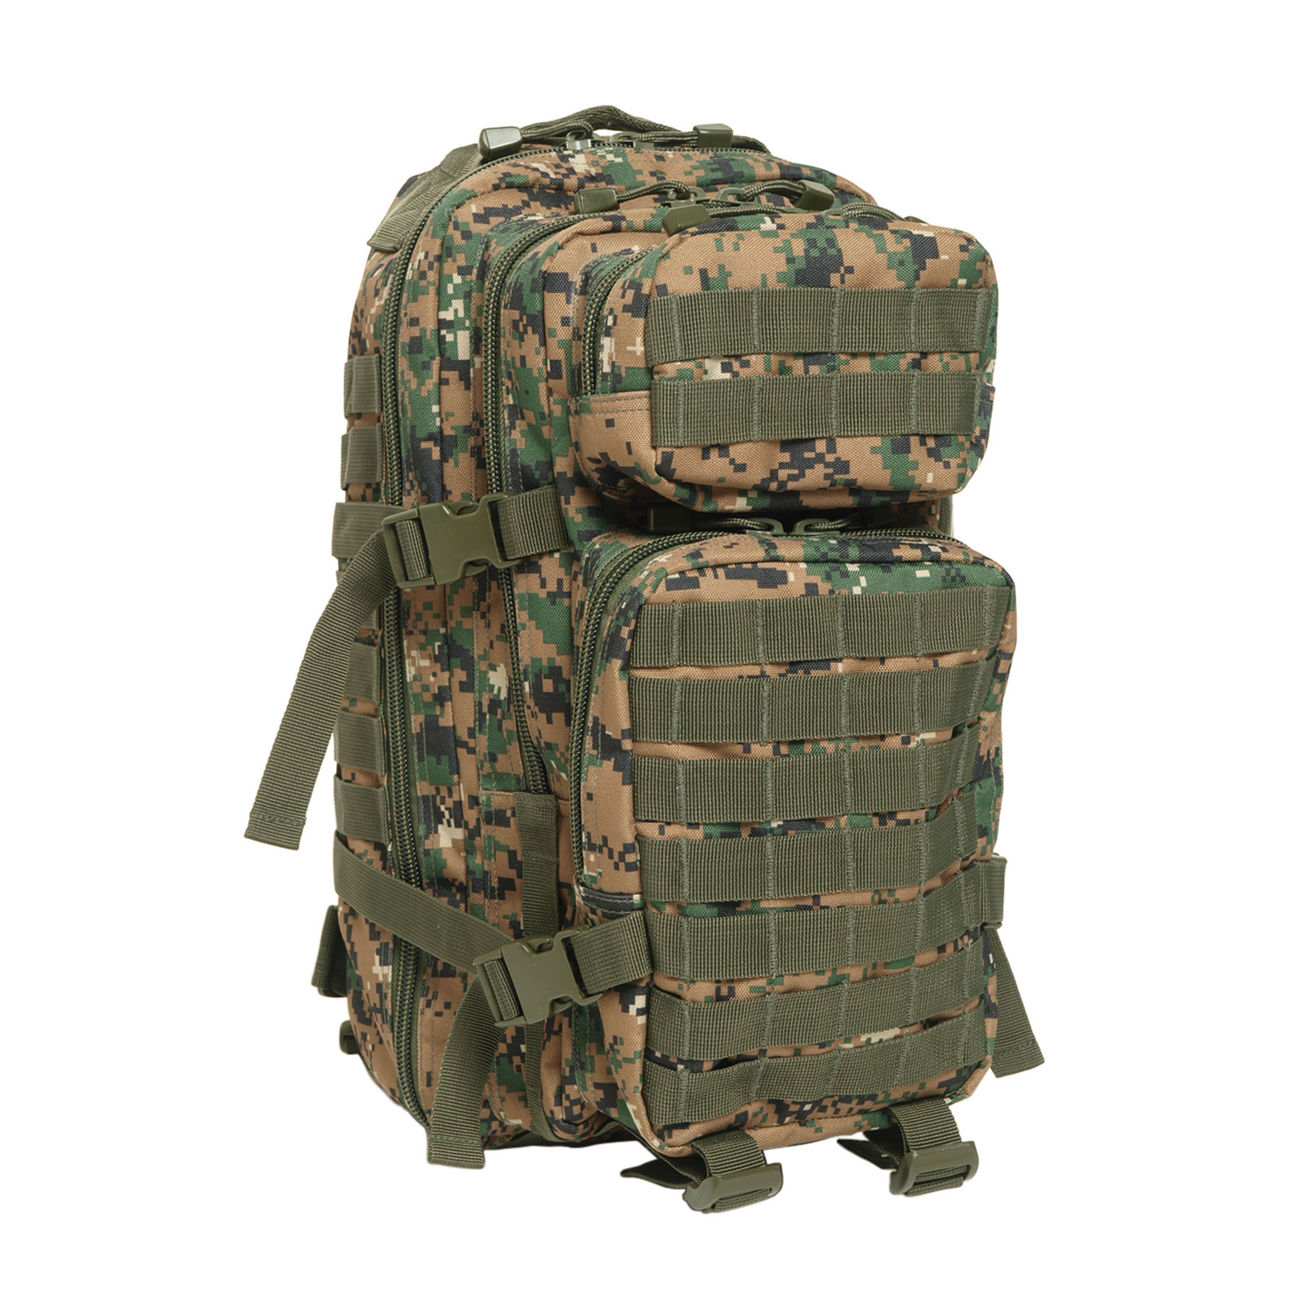 Mil-Tec Rucksack US Assault Pack I 20 Liter digital woodland 0